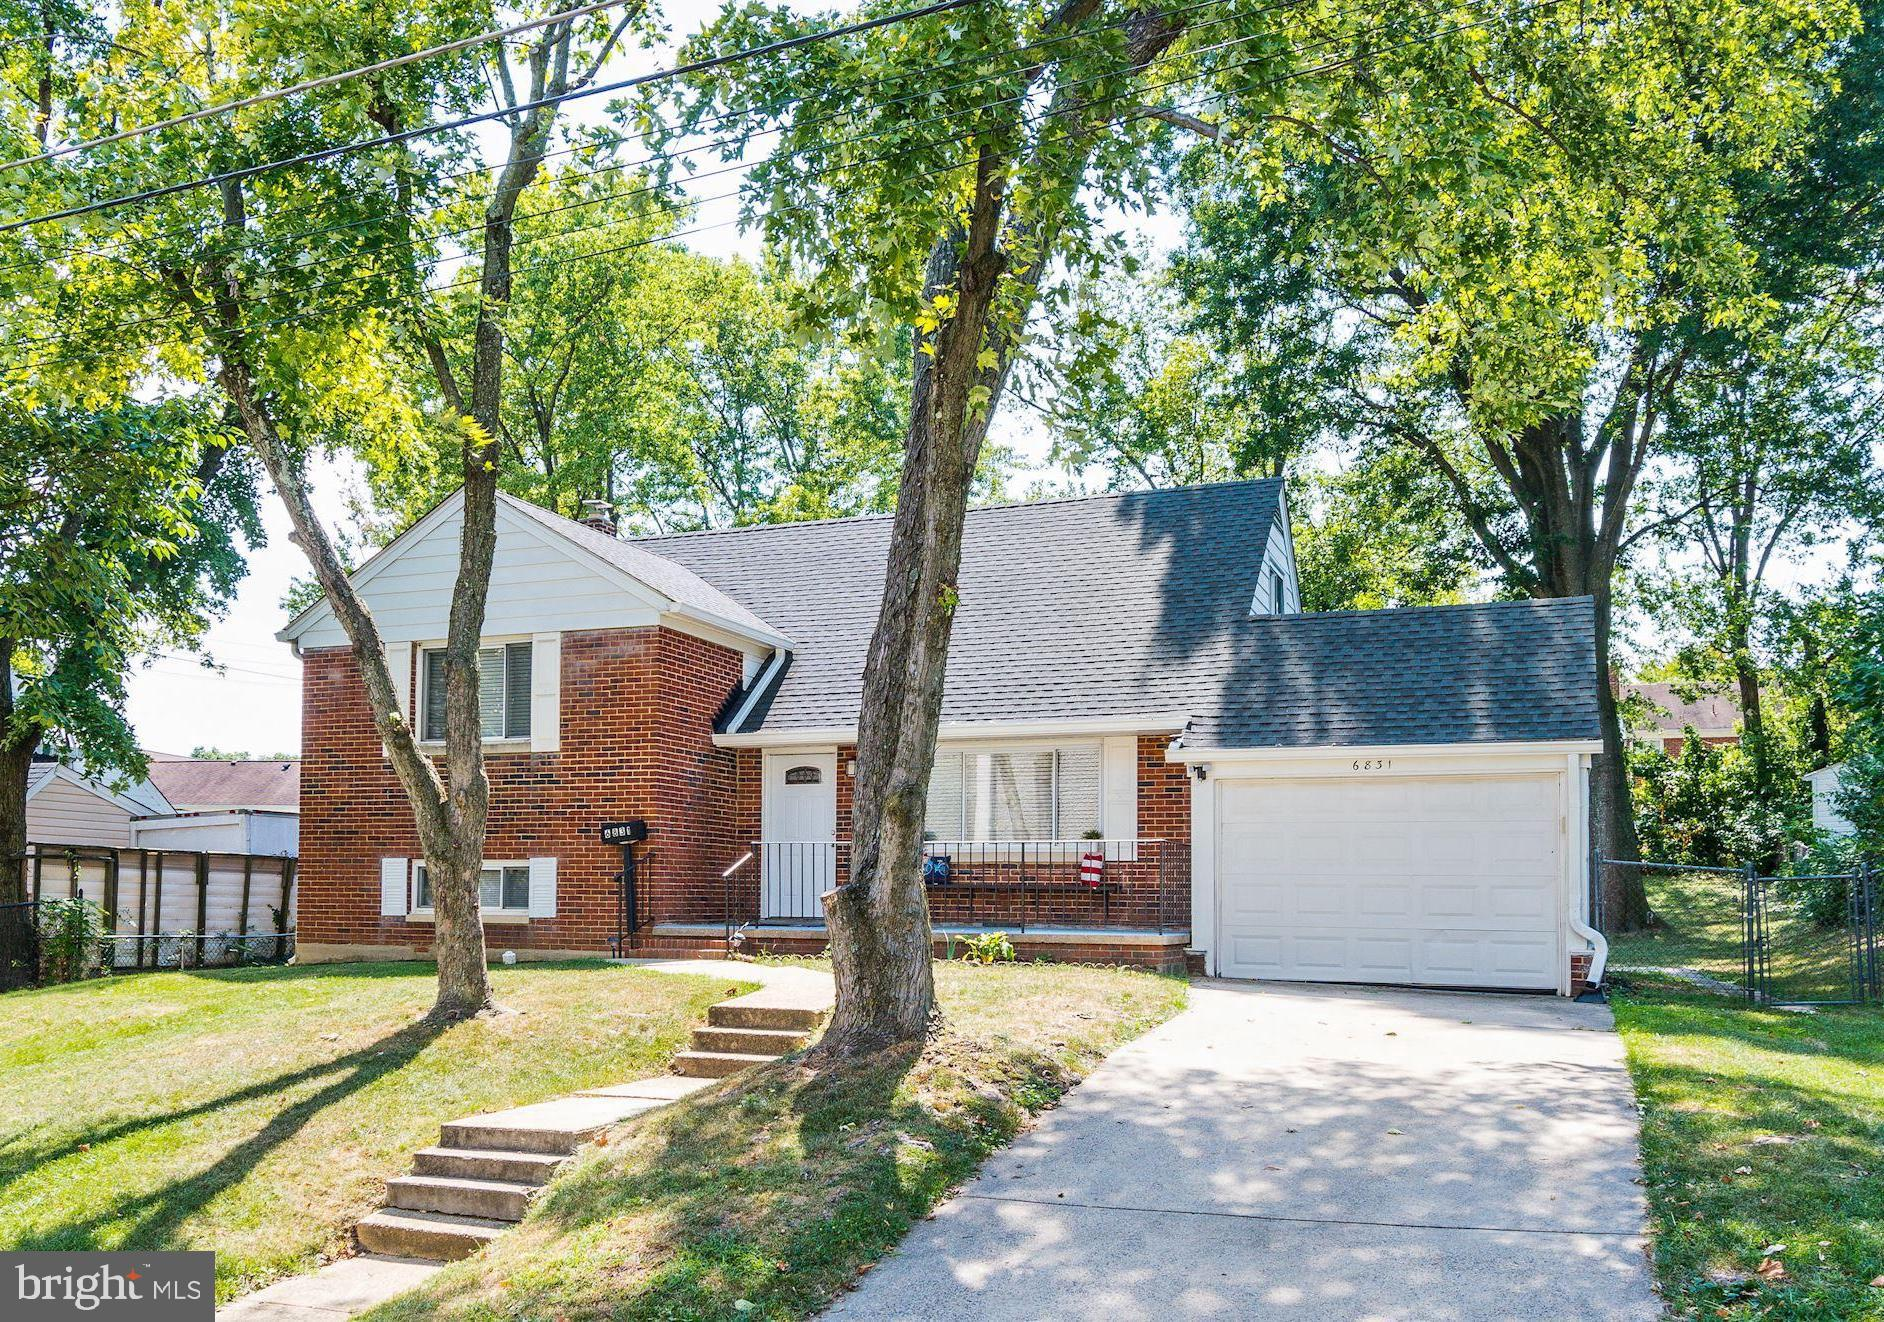 Warm and welcoming home,  Move-in ready!  Kitchen SS appliances, granite countertops, tile backsplash and tile floor. Hardwood floors on the main and upper levels.  3 bedrooms upstairs and rec room or 4th bedroom on the lower level.  Large, level fenced backyard with mature trees. An awesome location~ 2.5 Miles to the Springfield Metro, Walk to VRE,(.6 Mile) 15 minutes to the new Amazon campus, Crystal City, Fort Belvoir and the new TSA facility in Springfield.   Lake Accotink Park only 2.6 miles through the neighborhood.  See asap, It will go fast at this great price and condition.